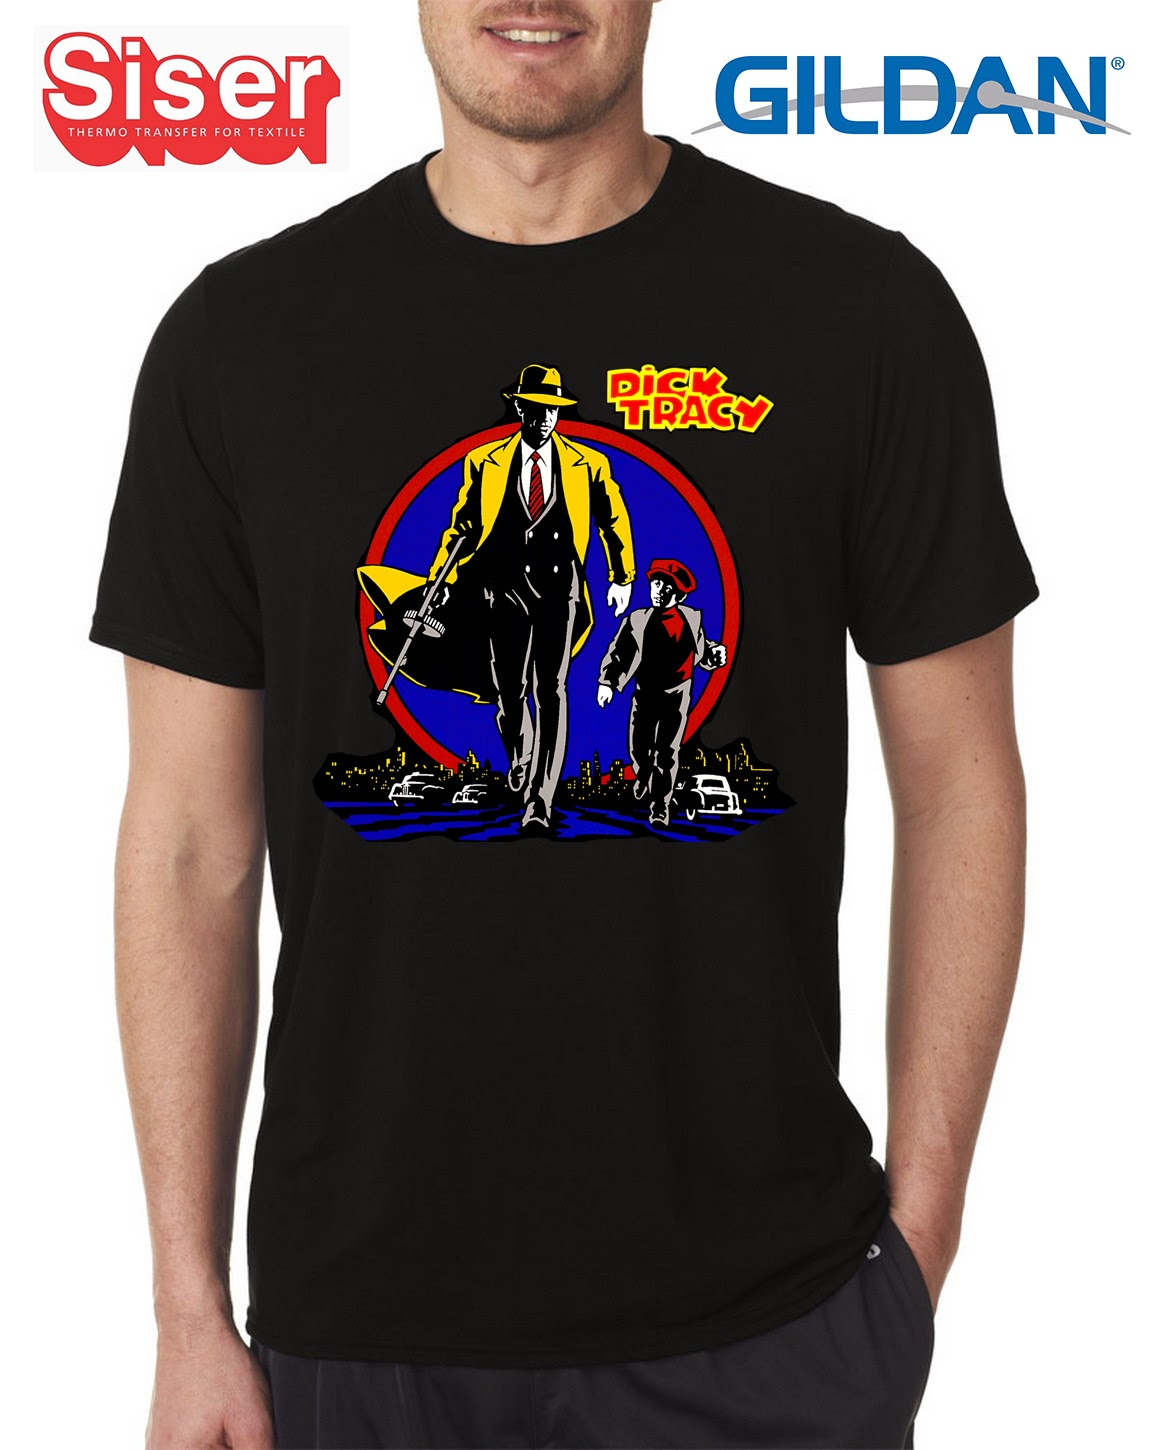 Niescha T Shirt Kaos Dick Tracy